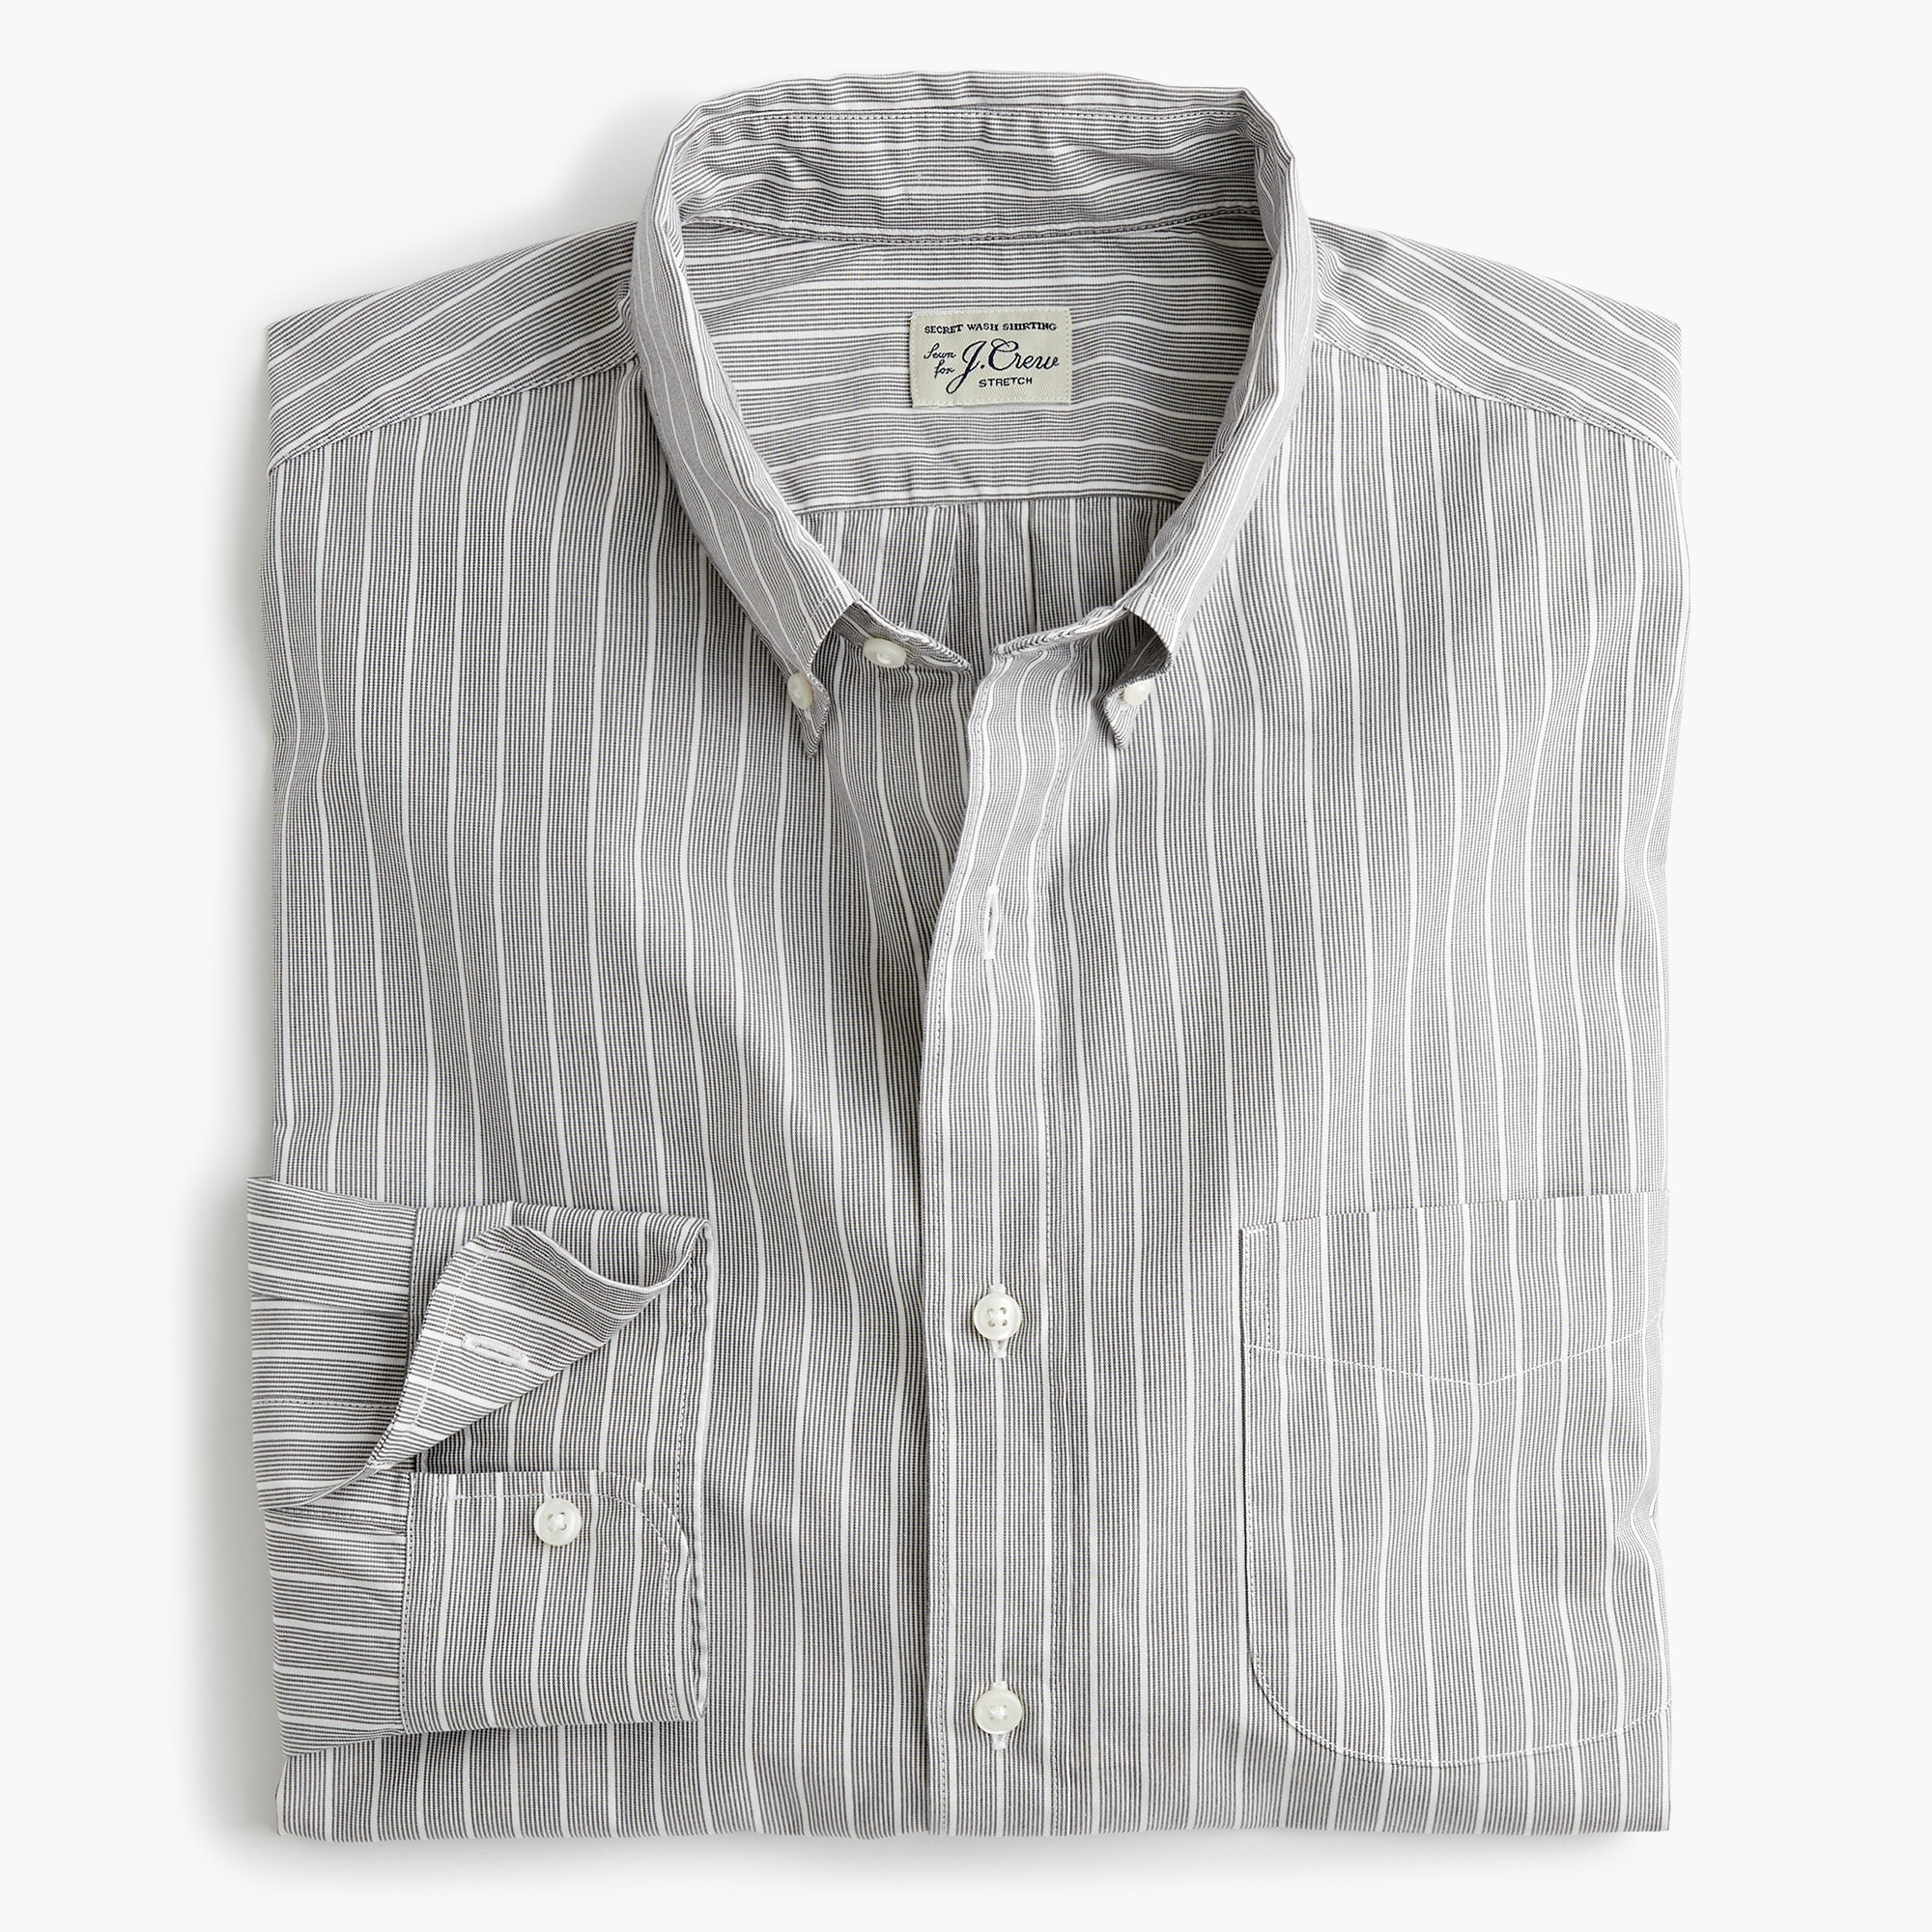 mens Stretch Secret Wash shirt in grey microstripe